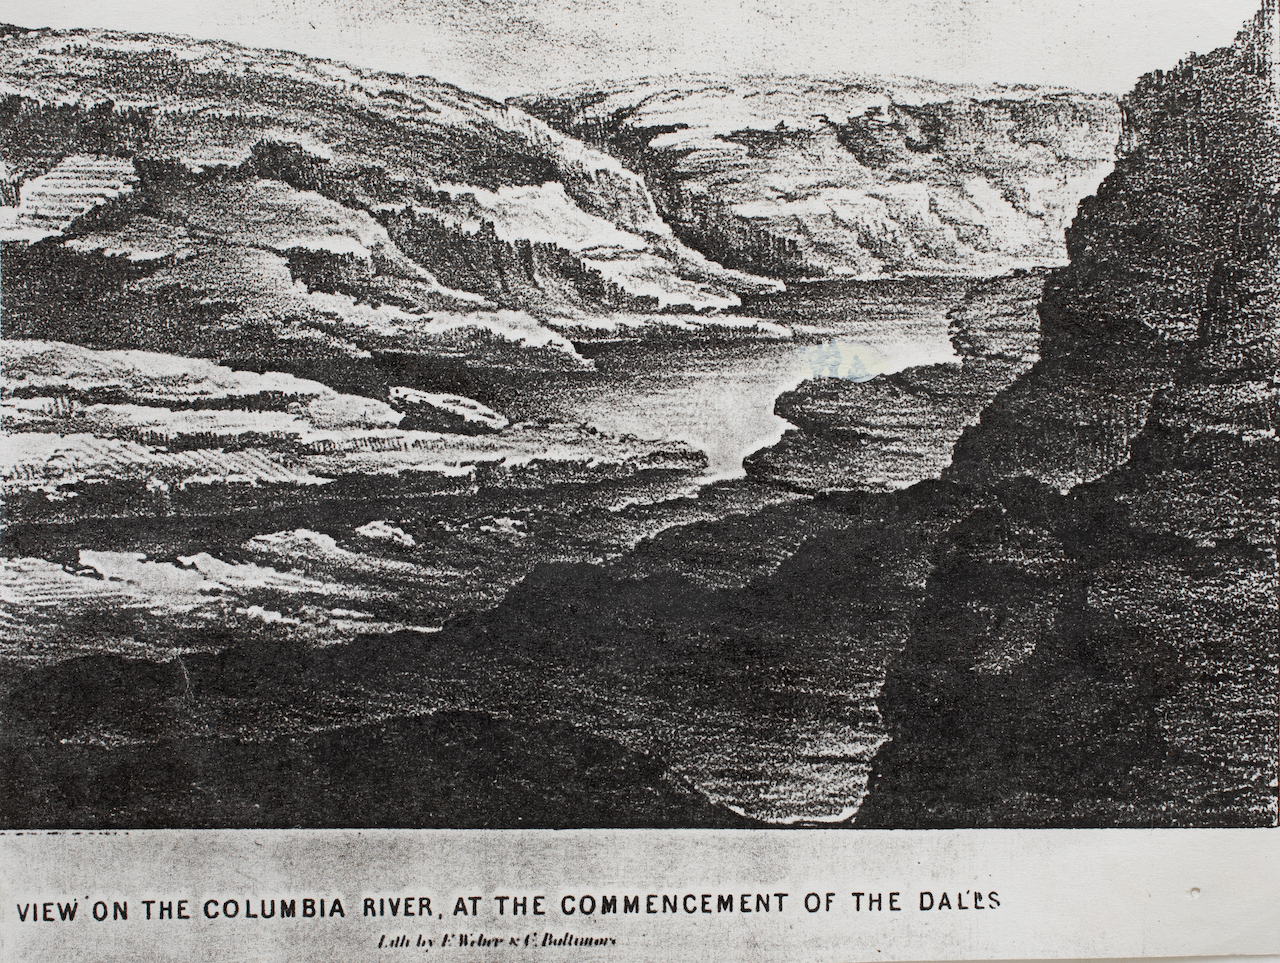 """Rita Robillard - 'The Gorge' 1860 Lith - Original 1860 Lith from Oregon Historical Society, the basis for """"The Gorge"""" screenprint"""